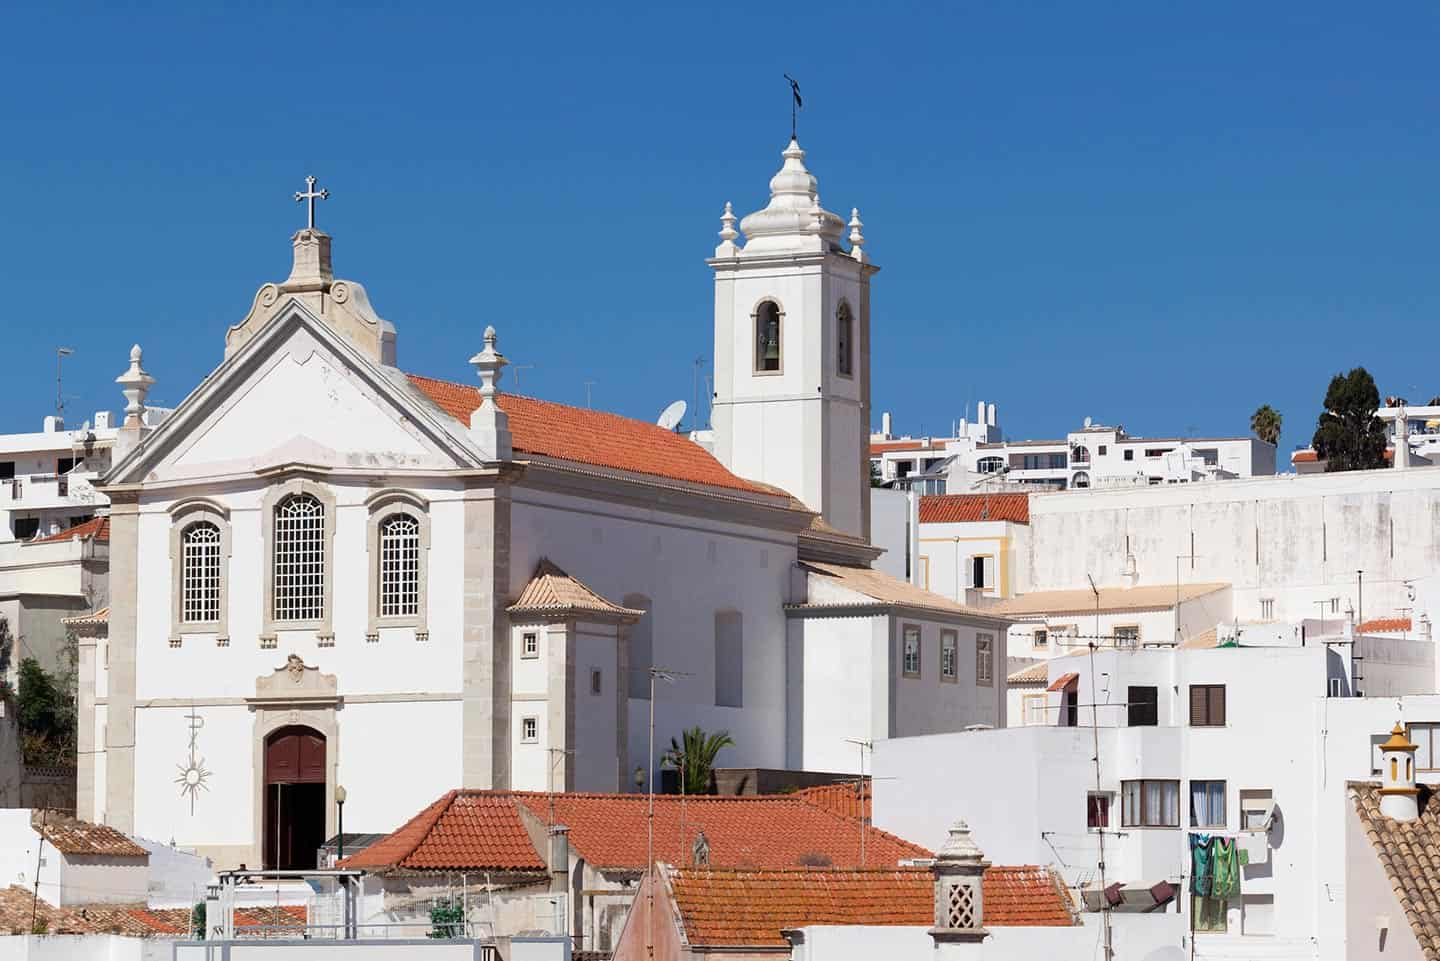 What to do in Albufeira Image of church in the Old Town